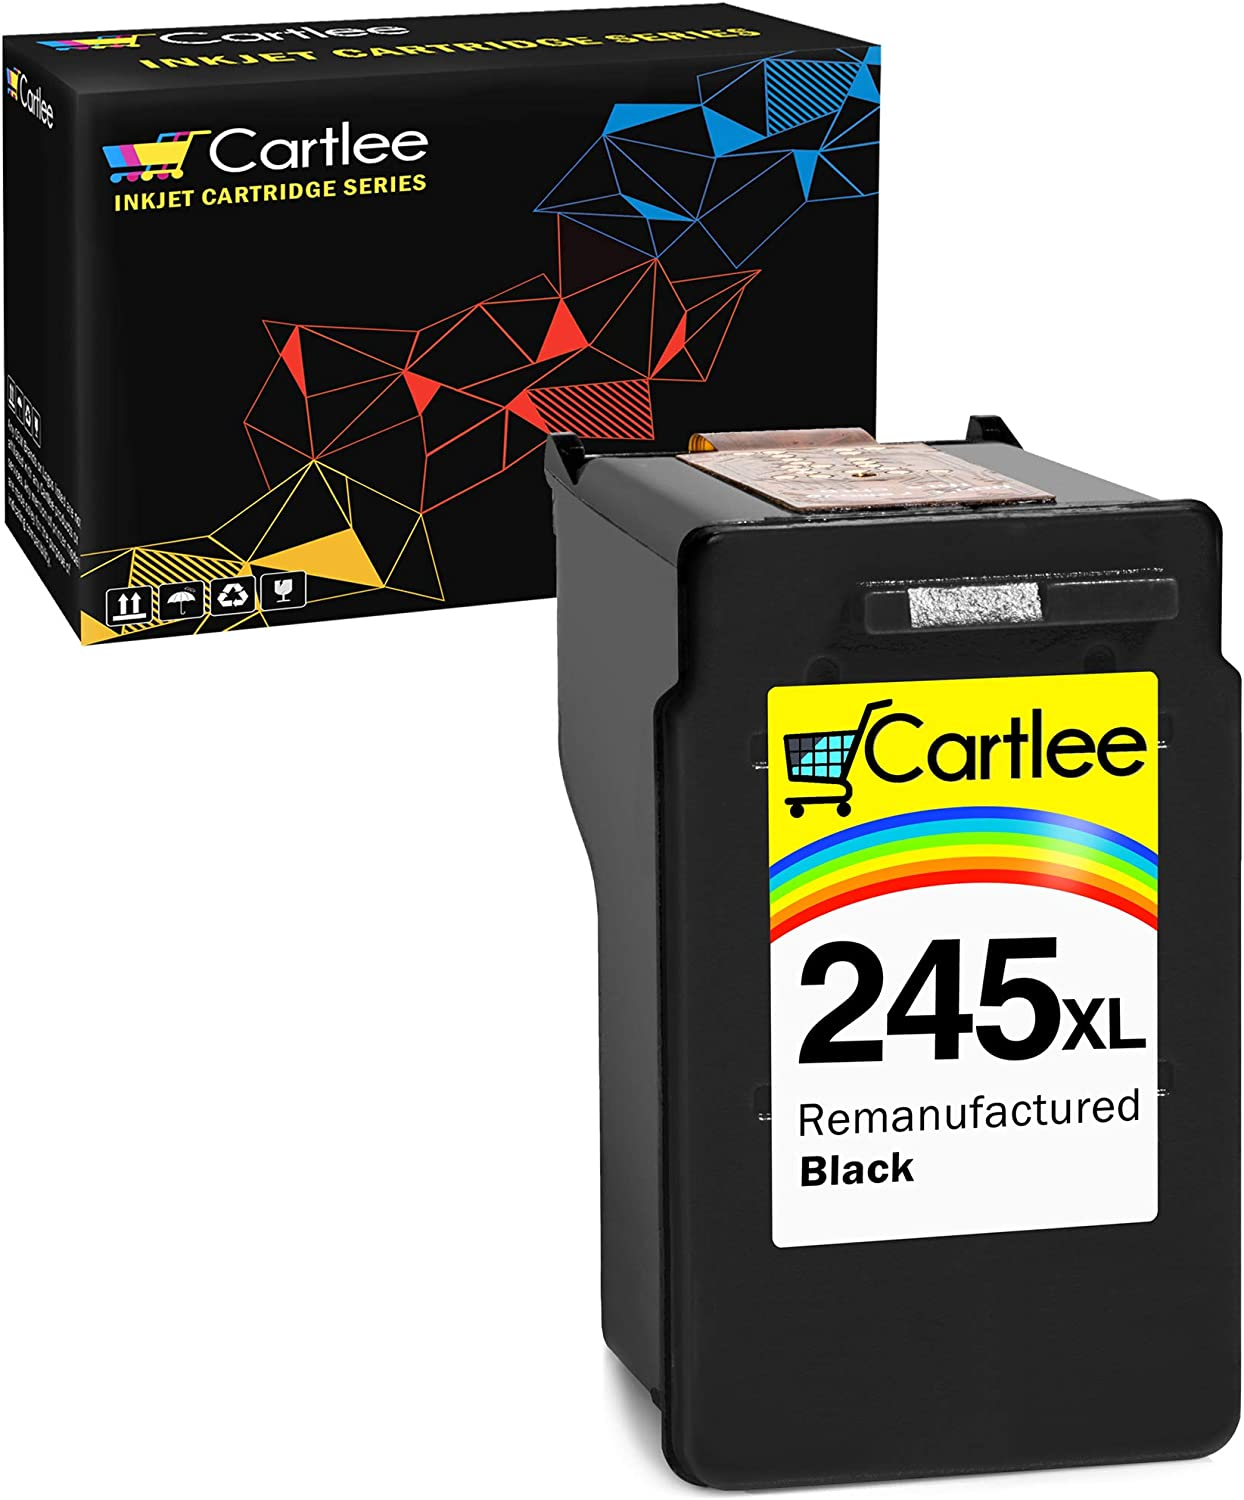 Cartlee 1 Black Remanufactured PG-245xl High Yield Ink Cartridges Replacement for iP2820 MG2420 MG2920 MG2922 MG2520 MG2924 MX492 - Shows Ink Level